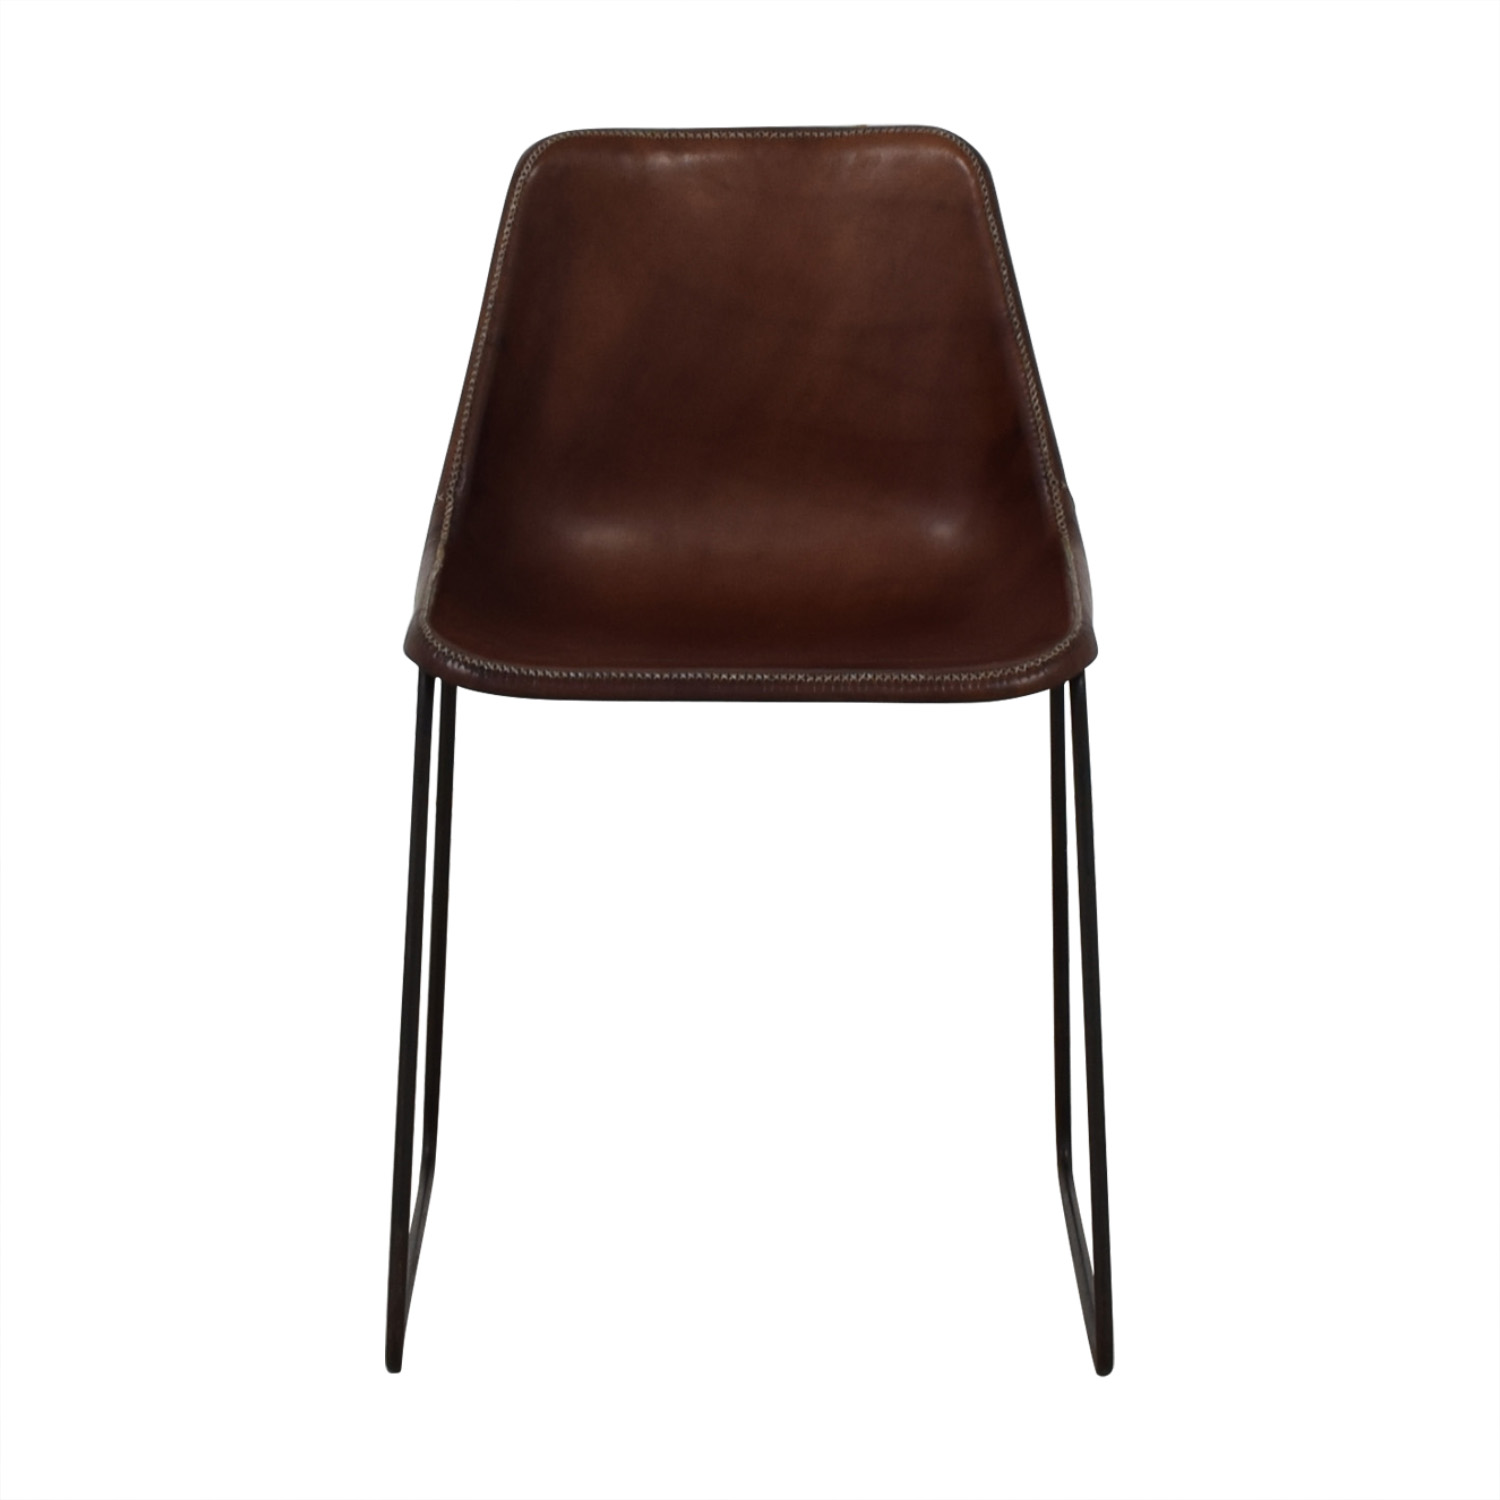 ABC Carpet & Home ABC Carpet & Home Giron Brown Leather Chair price